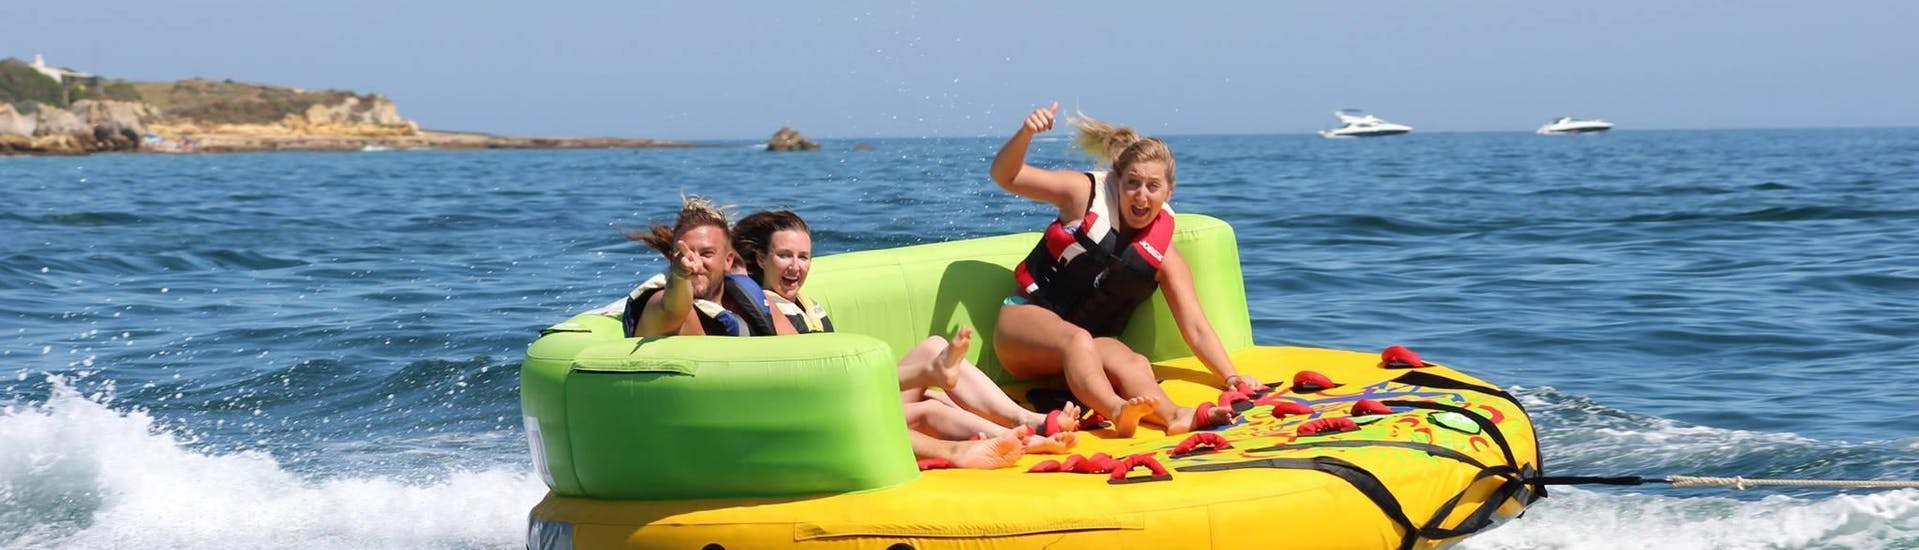 ufo-ride-albufeira-nautifun-gale-hero